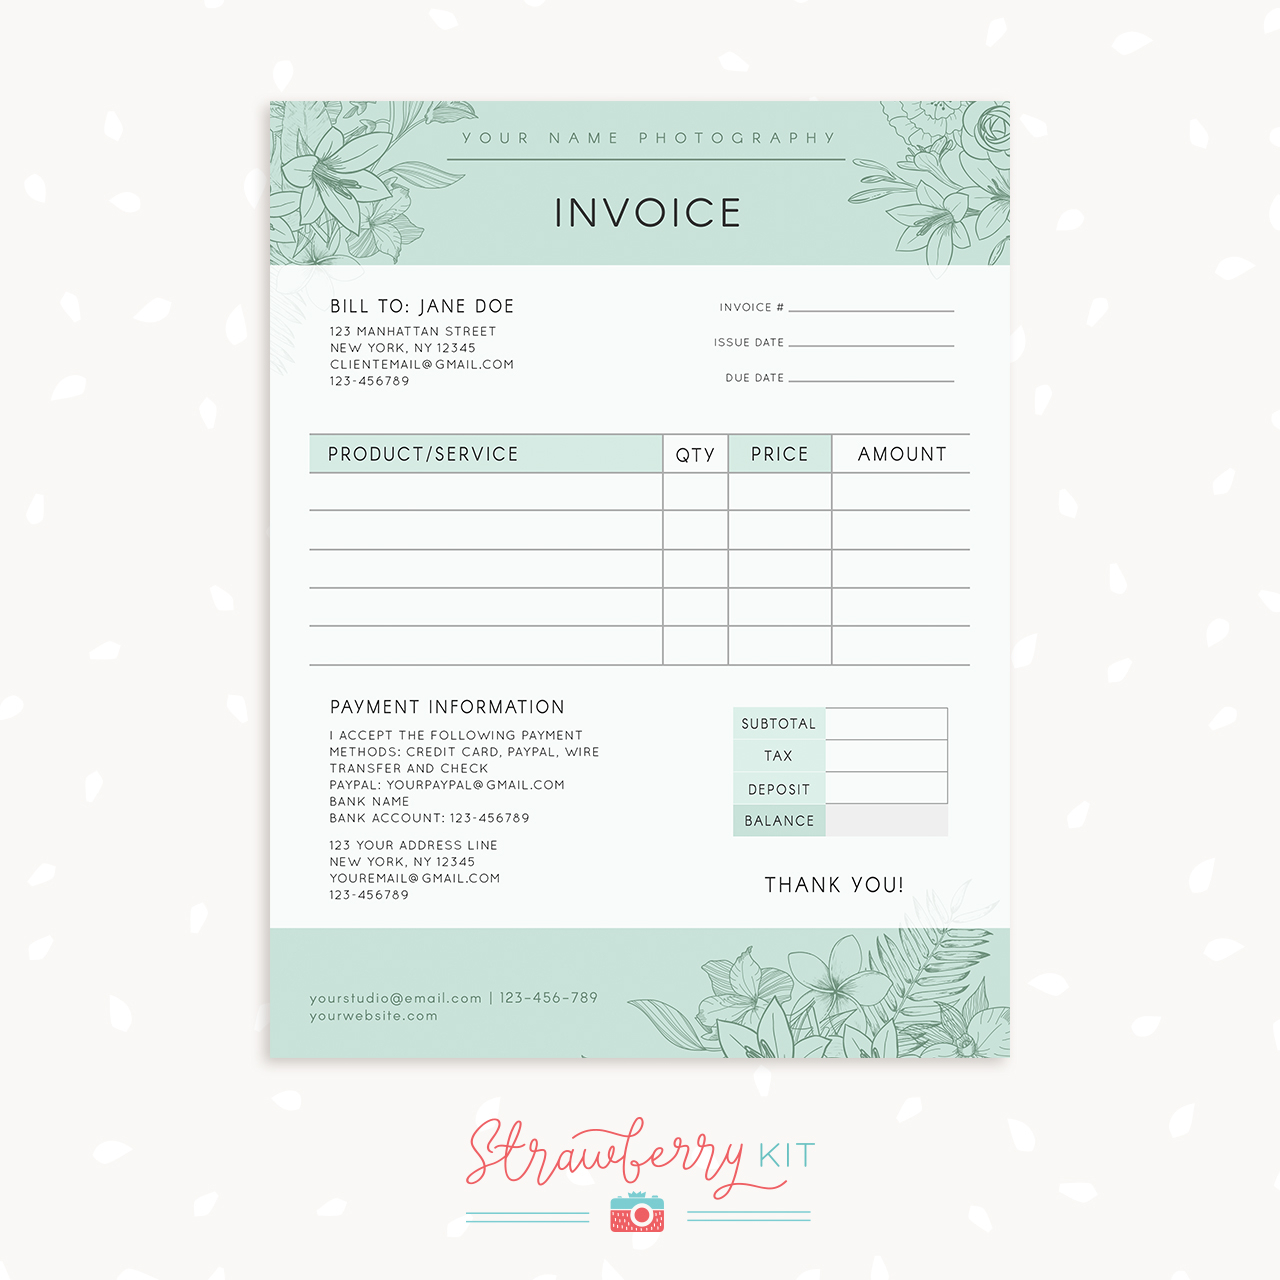 Floral Photography Invoice Template   Strawberry Kit With Photography Invoice Template